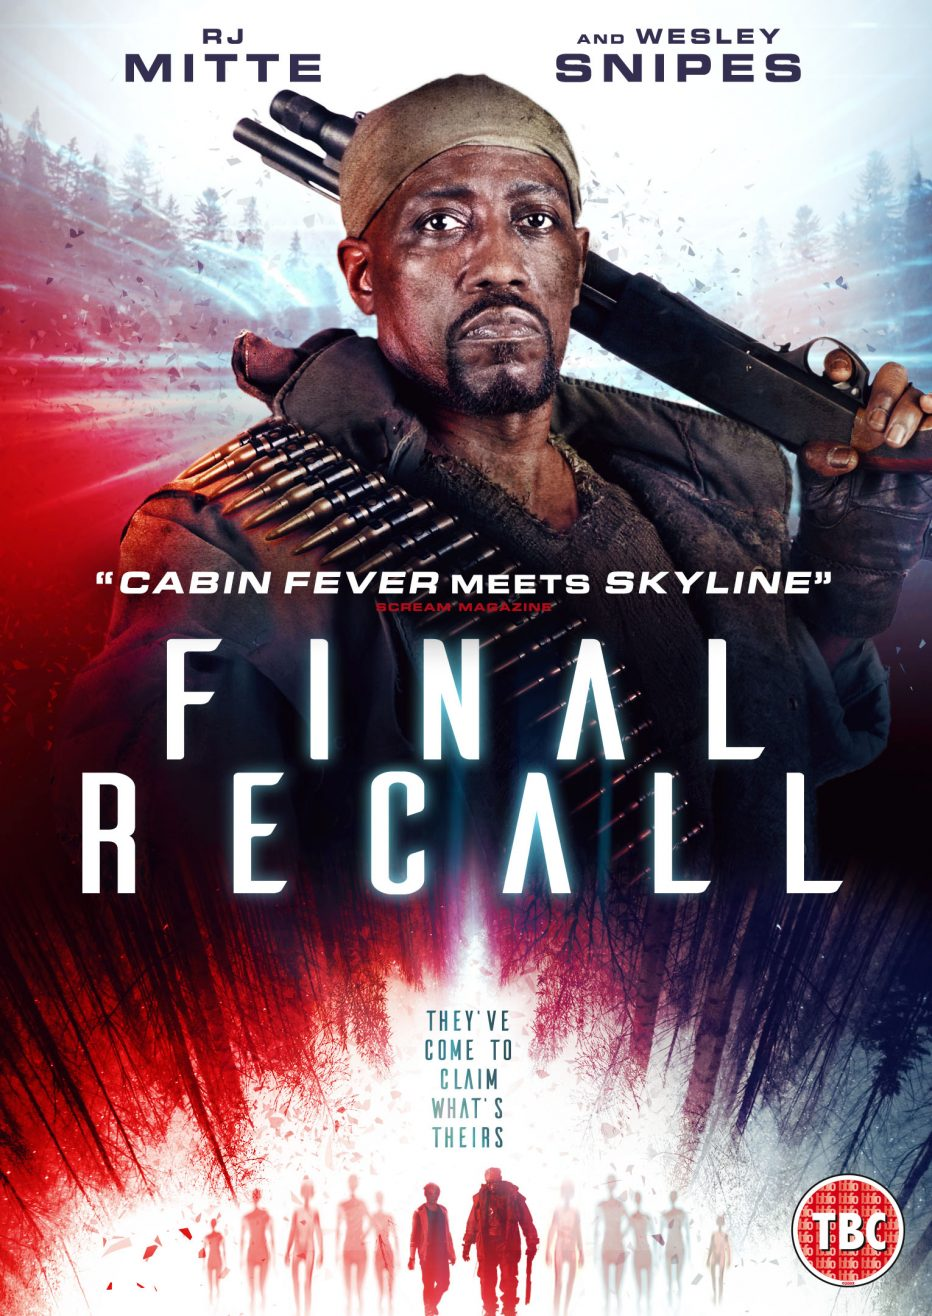 FINAL RECALL, STARRING WESLEY SNIPES, RELEASES ON DVD 21ST AUGUST 2017